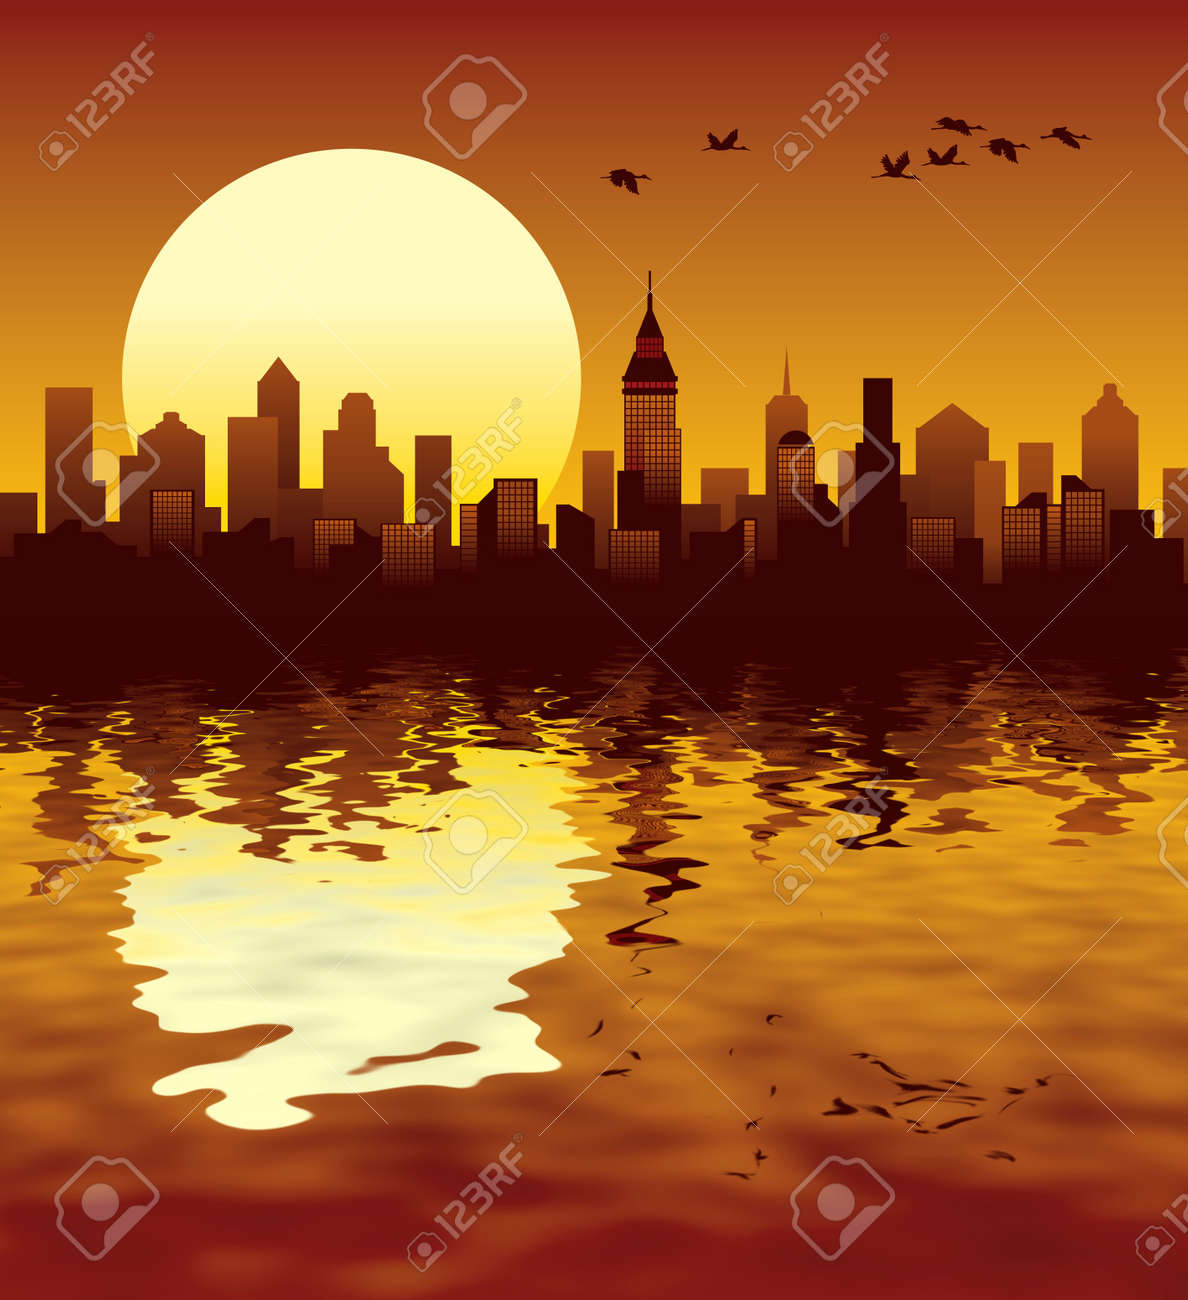 Sunset in a big modern city, illustration Stock Photo - 2549100